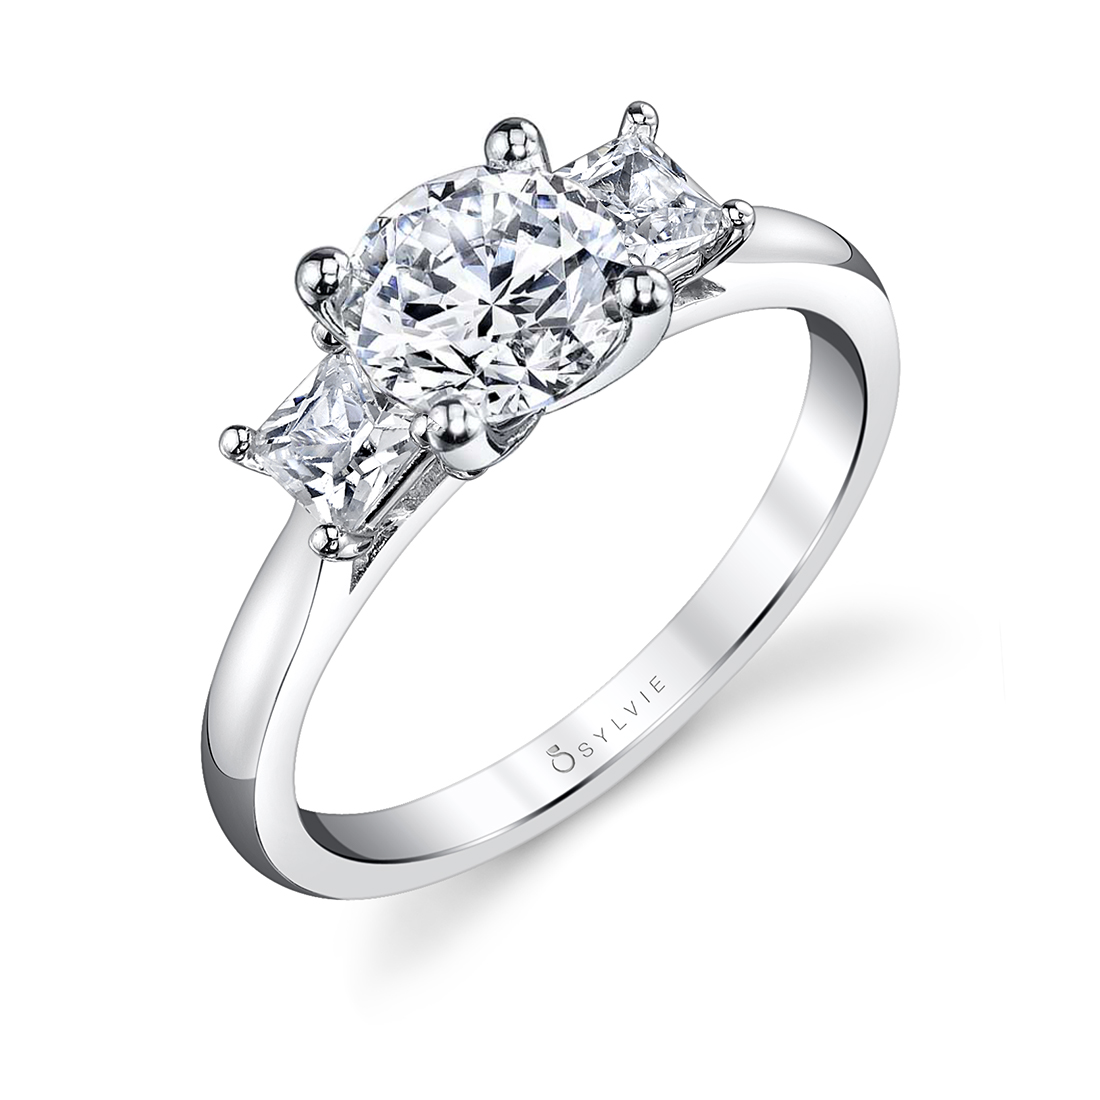 3 Stone Engagement Ring with Princess Side Stones - Micheline